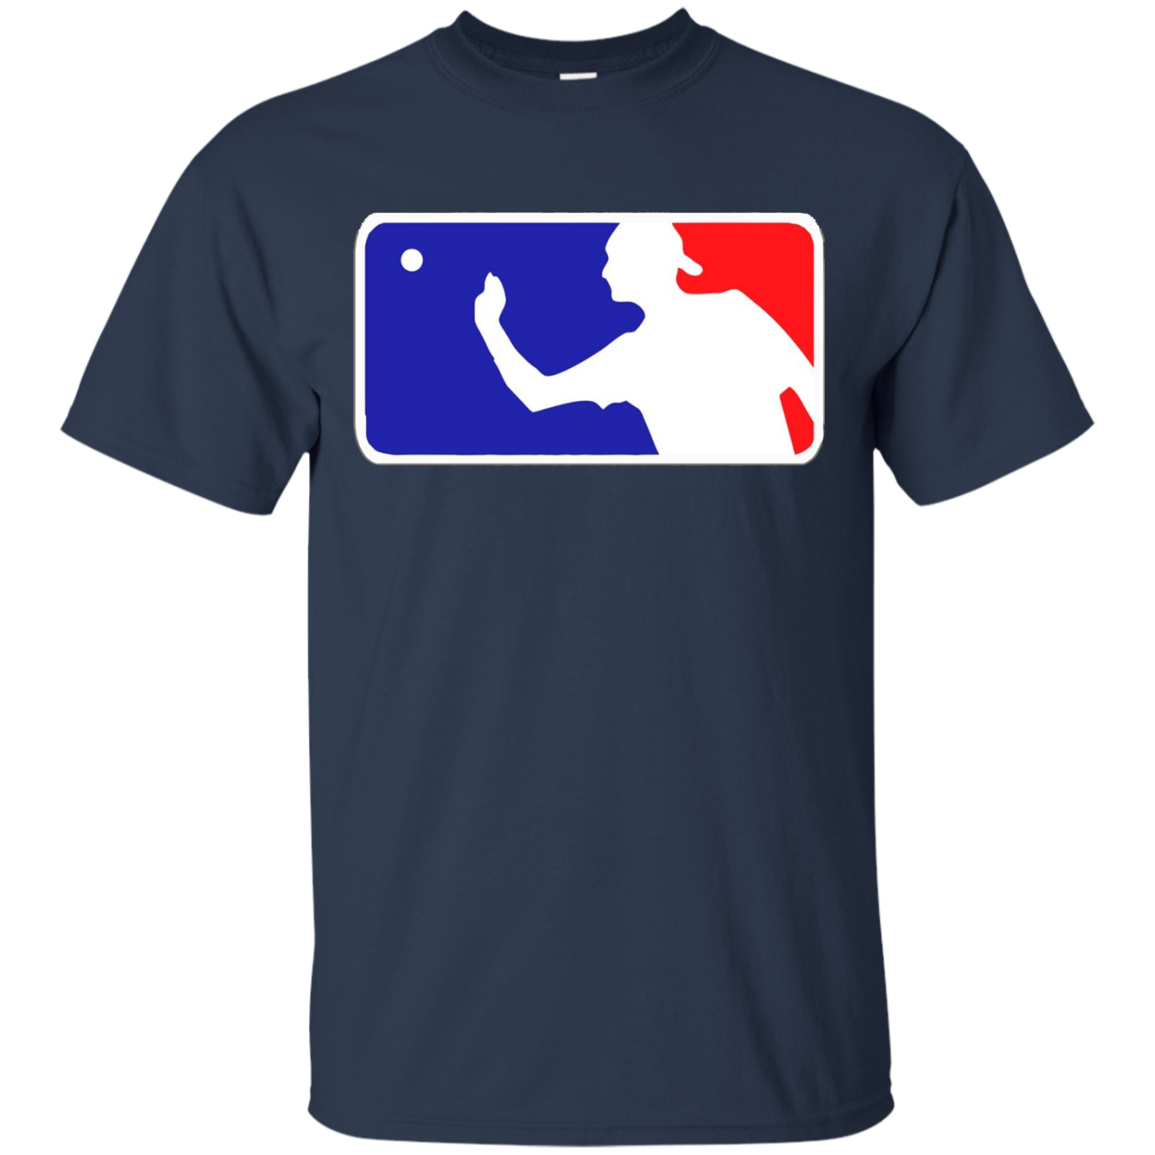 Major League Beer Pong T-shirt